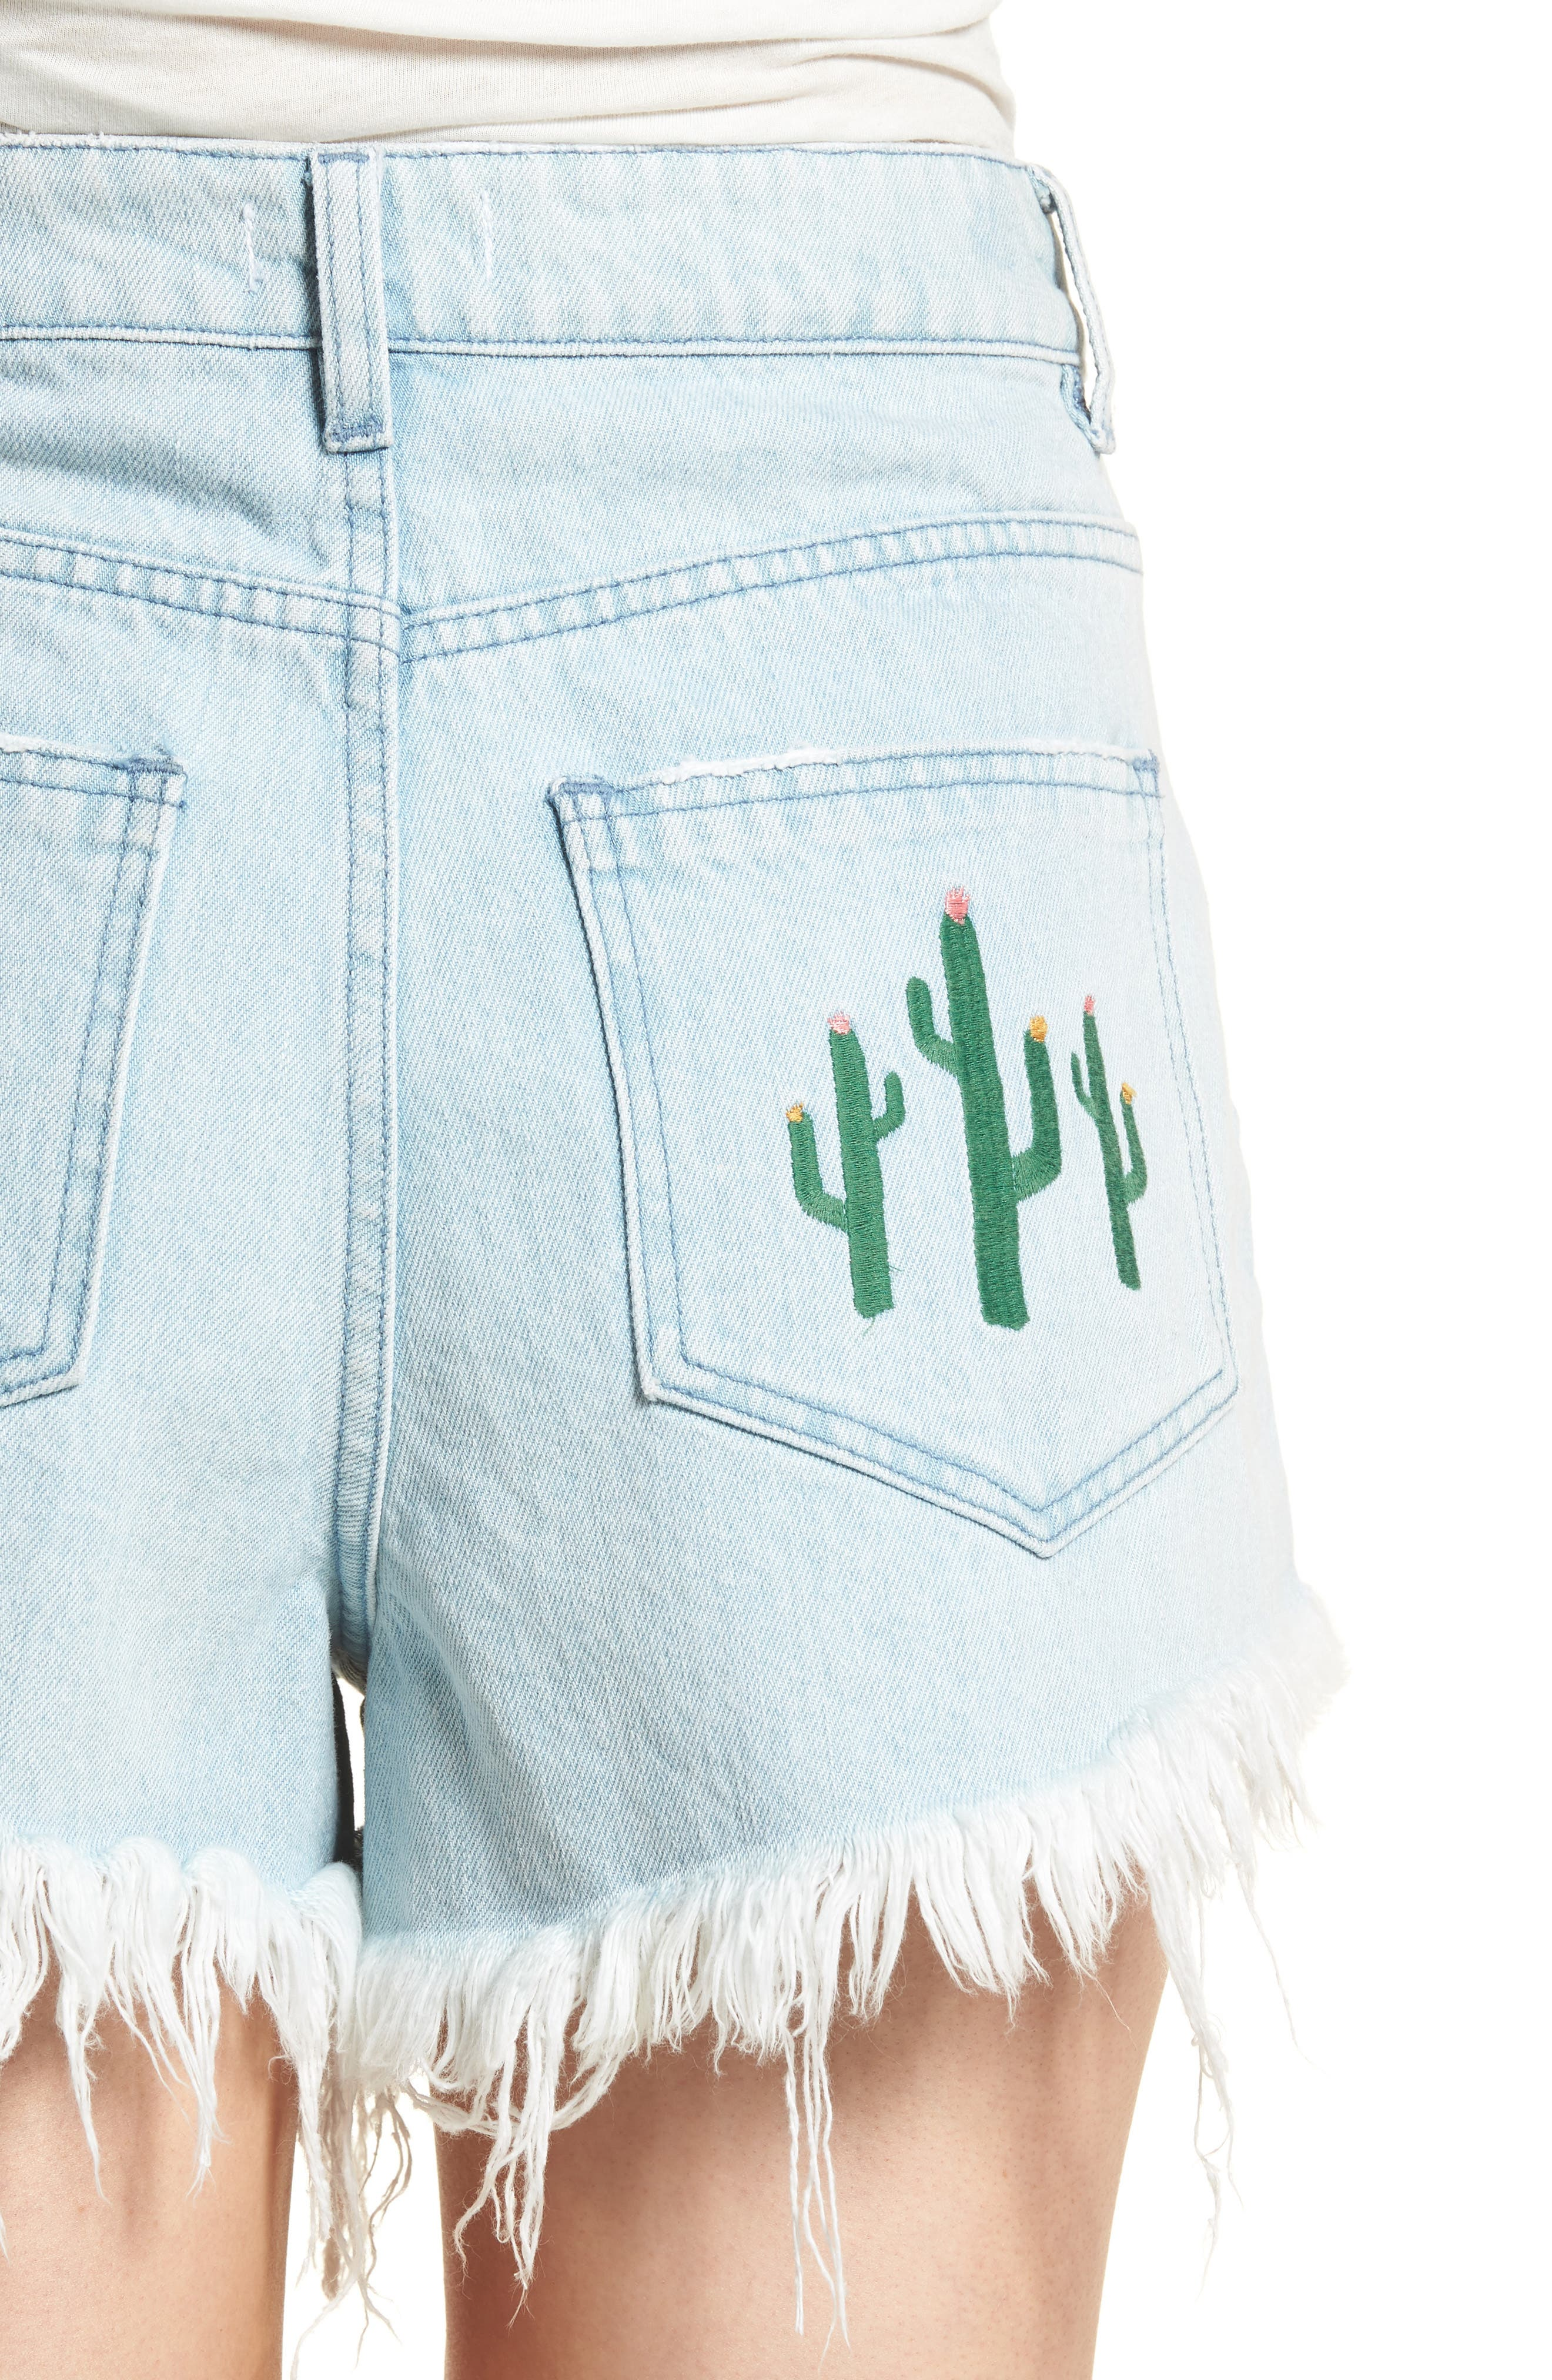 Wyoming High Waist Cutoff Denim Shorts,                             Alternate thumbnail 4, color,                             Whitewater With Cactus